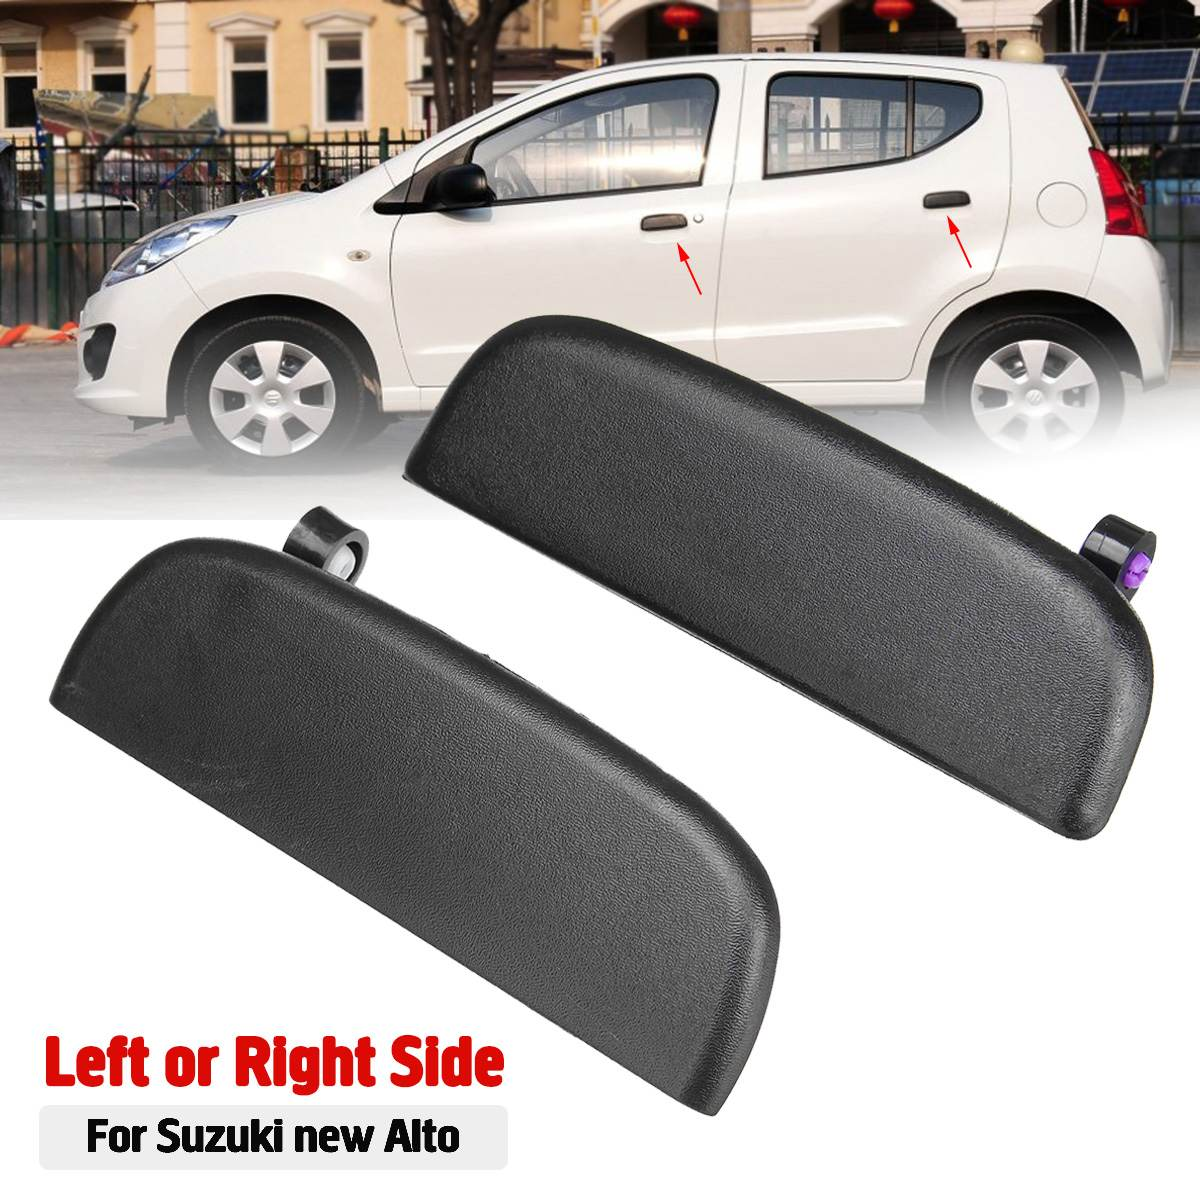 Car Front Rear Outer Exterior Door Open Handle Outside Door Knob Left Right Black For Suzuki New Alto-in Exterior Door Handles from Automobiles & Motorcycles